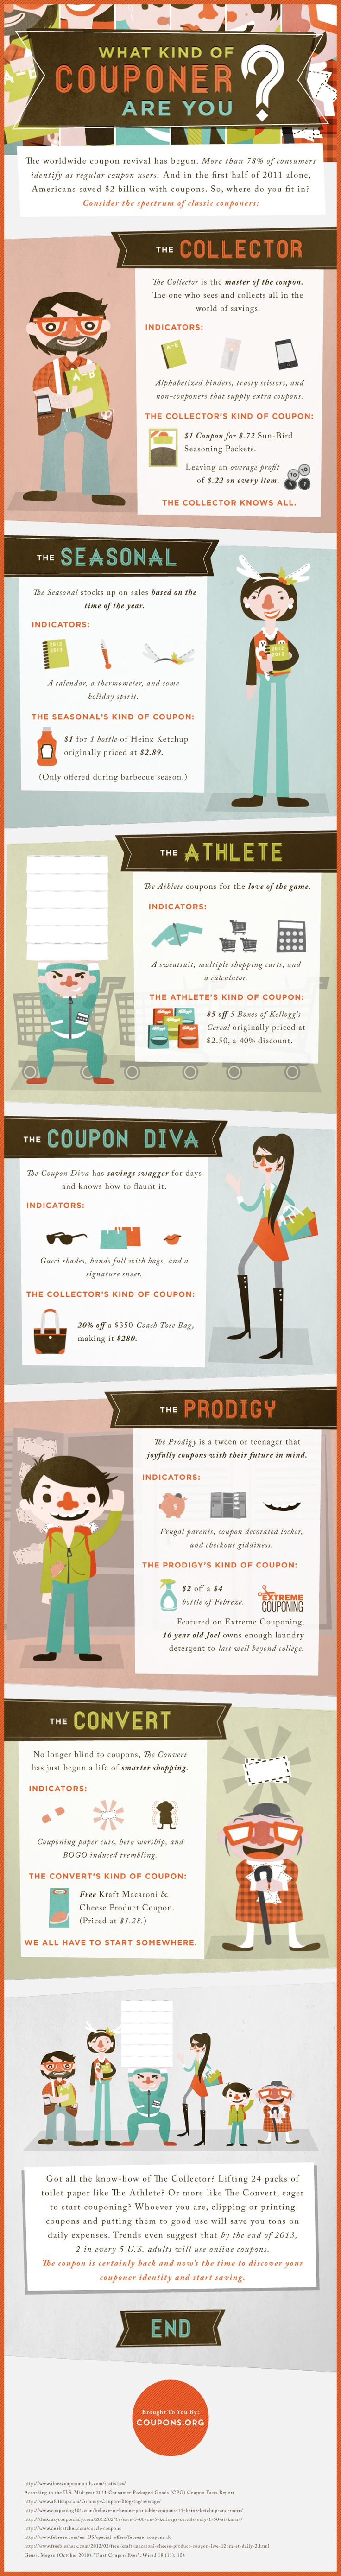 87 best how to coupon images on pinterest extreme couponing what kind of couponer are you fandeluxe